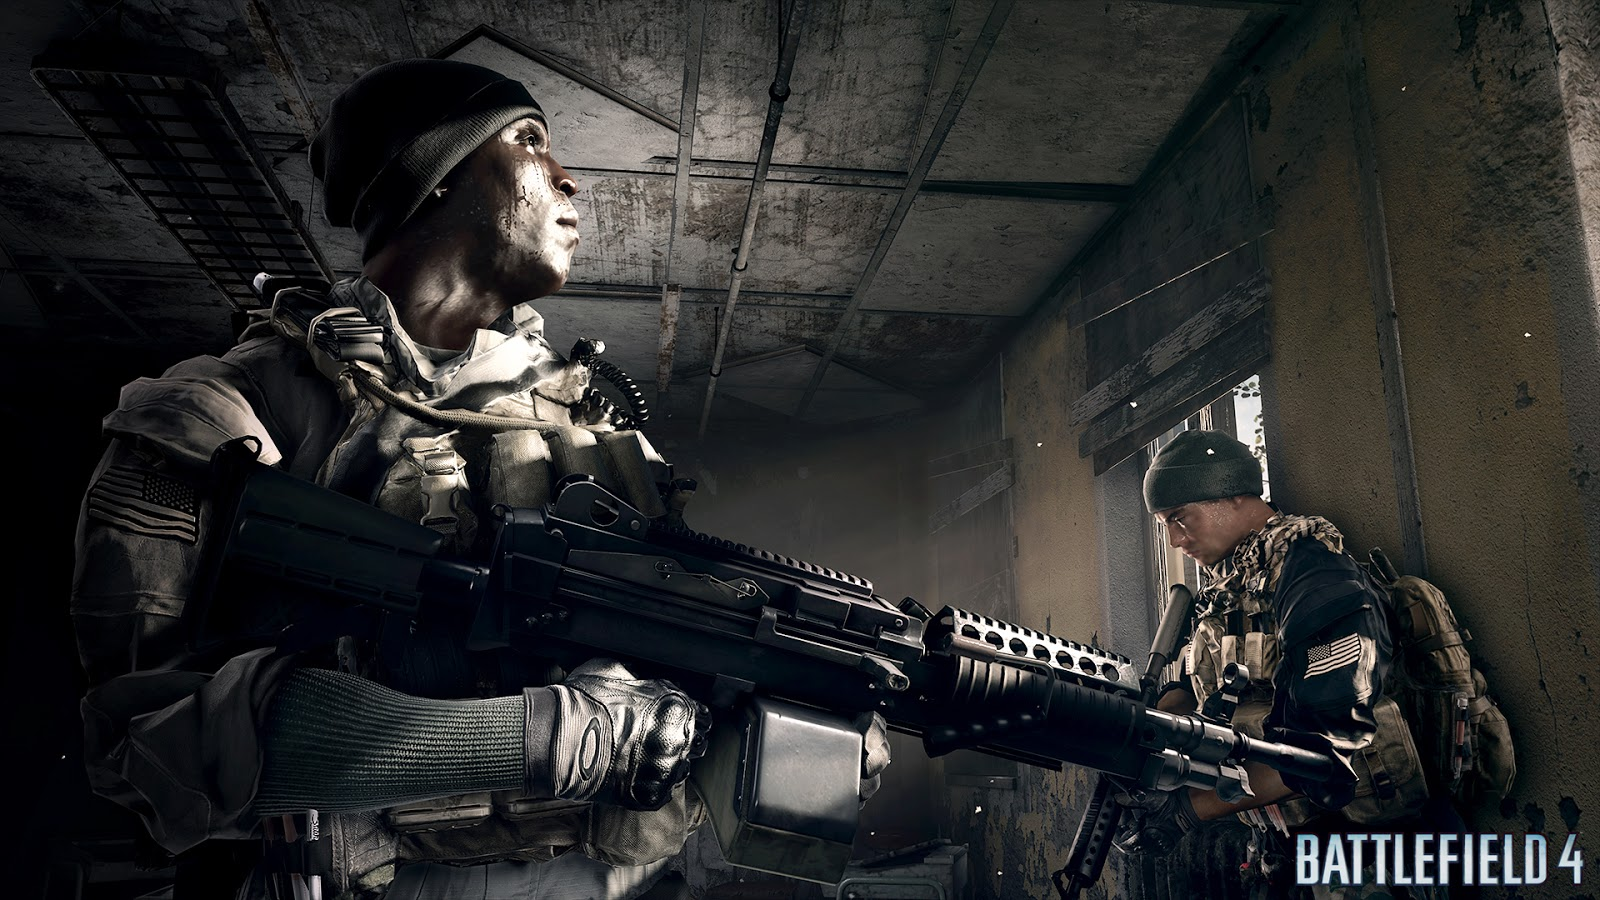 http://2.bp.blogspot.com/-WWuvPck0Ixw/UVPtVFYz6LI/AAAAAAAAD0Y/k2m1rMeNc6w/s1600/battlefield+4+wallpaper+hd+gameplay+screenshot+3.jpg